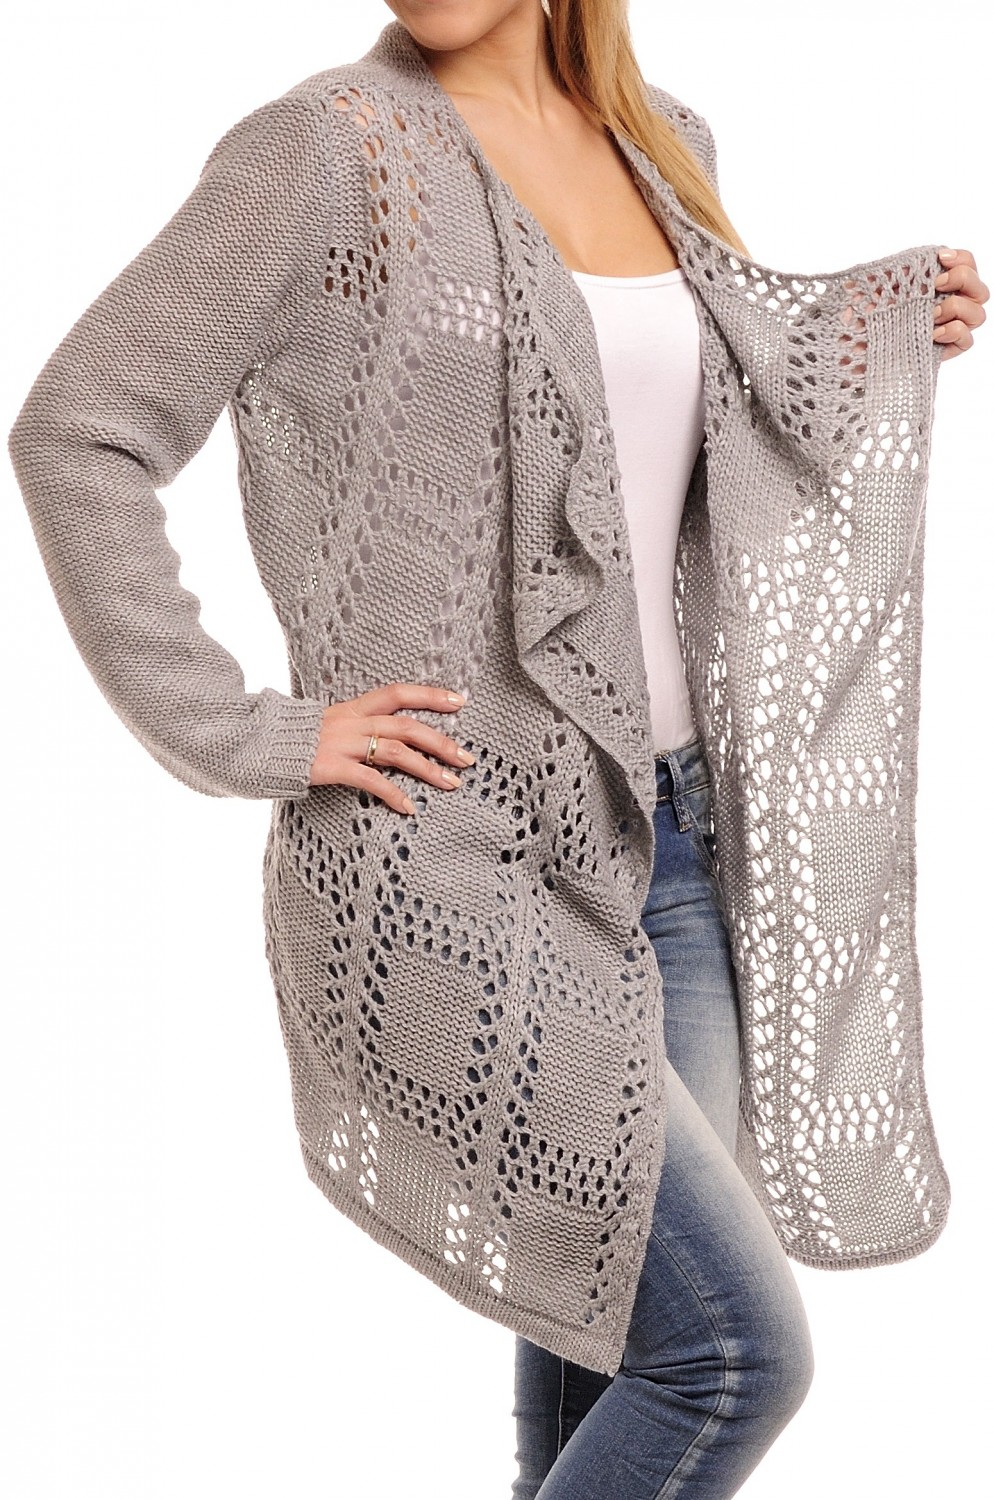 Knitting Pattern Waterfall Cardigan Free : Glamour Empire Womens Knitted Coat Waterfall Crochet Front Long Cardigan...